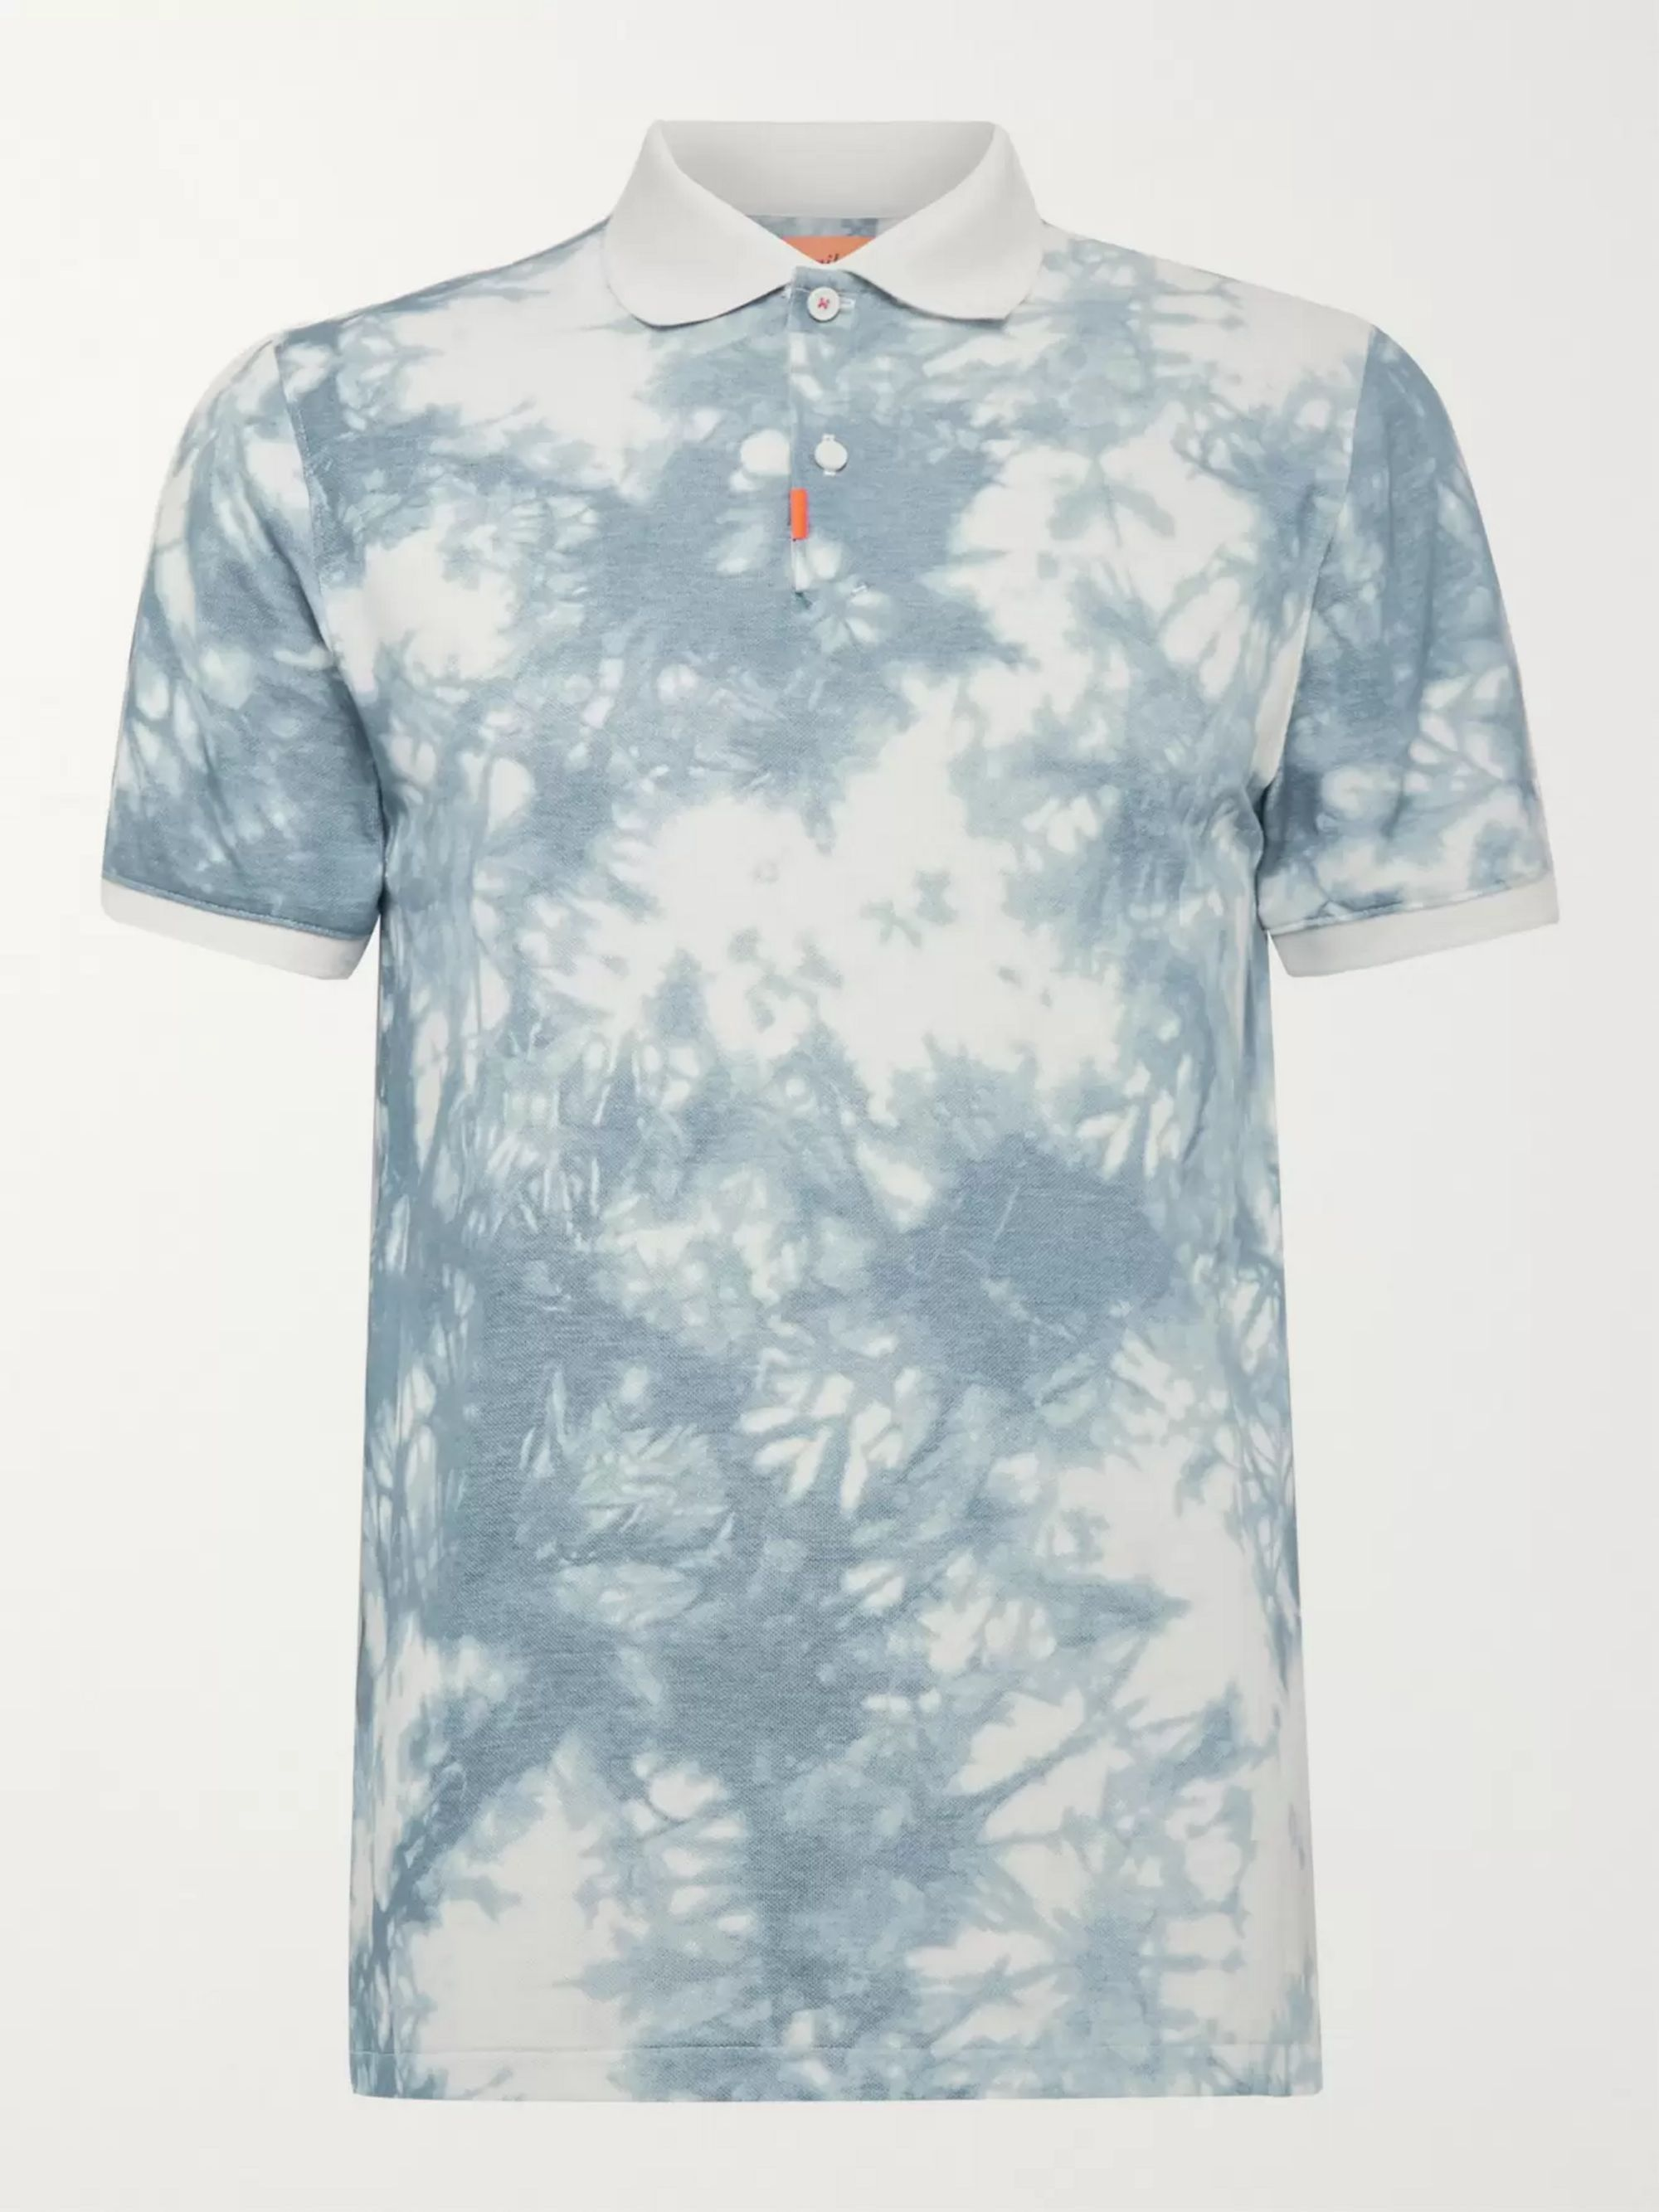 Nike Golf Tie-Dyed Dri-FIT Polo Shirt